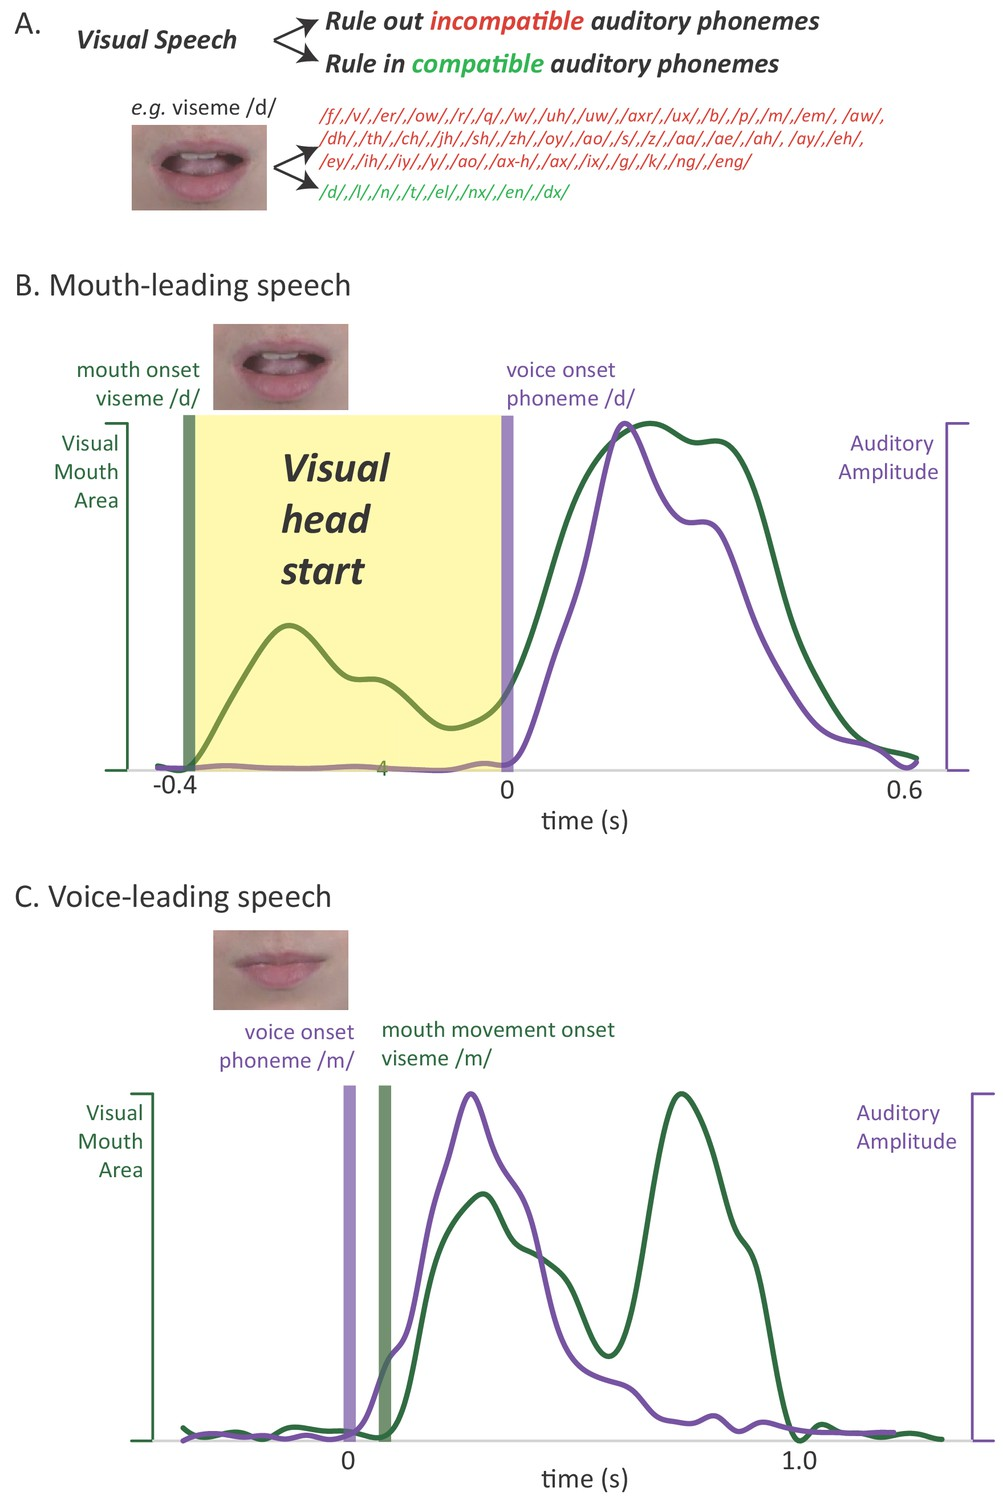 The visual speech head start improves perception and reduces